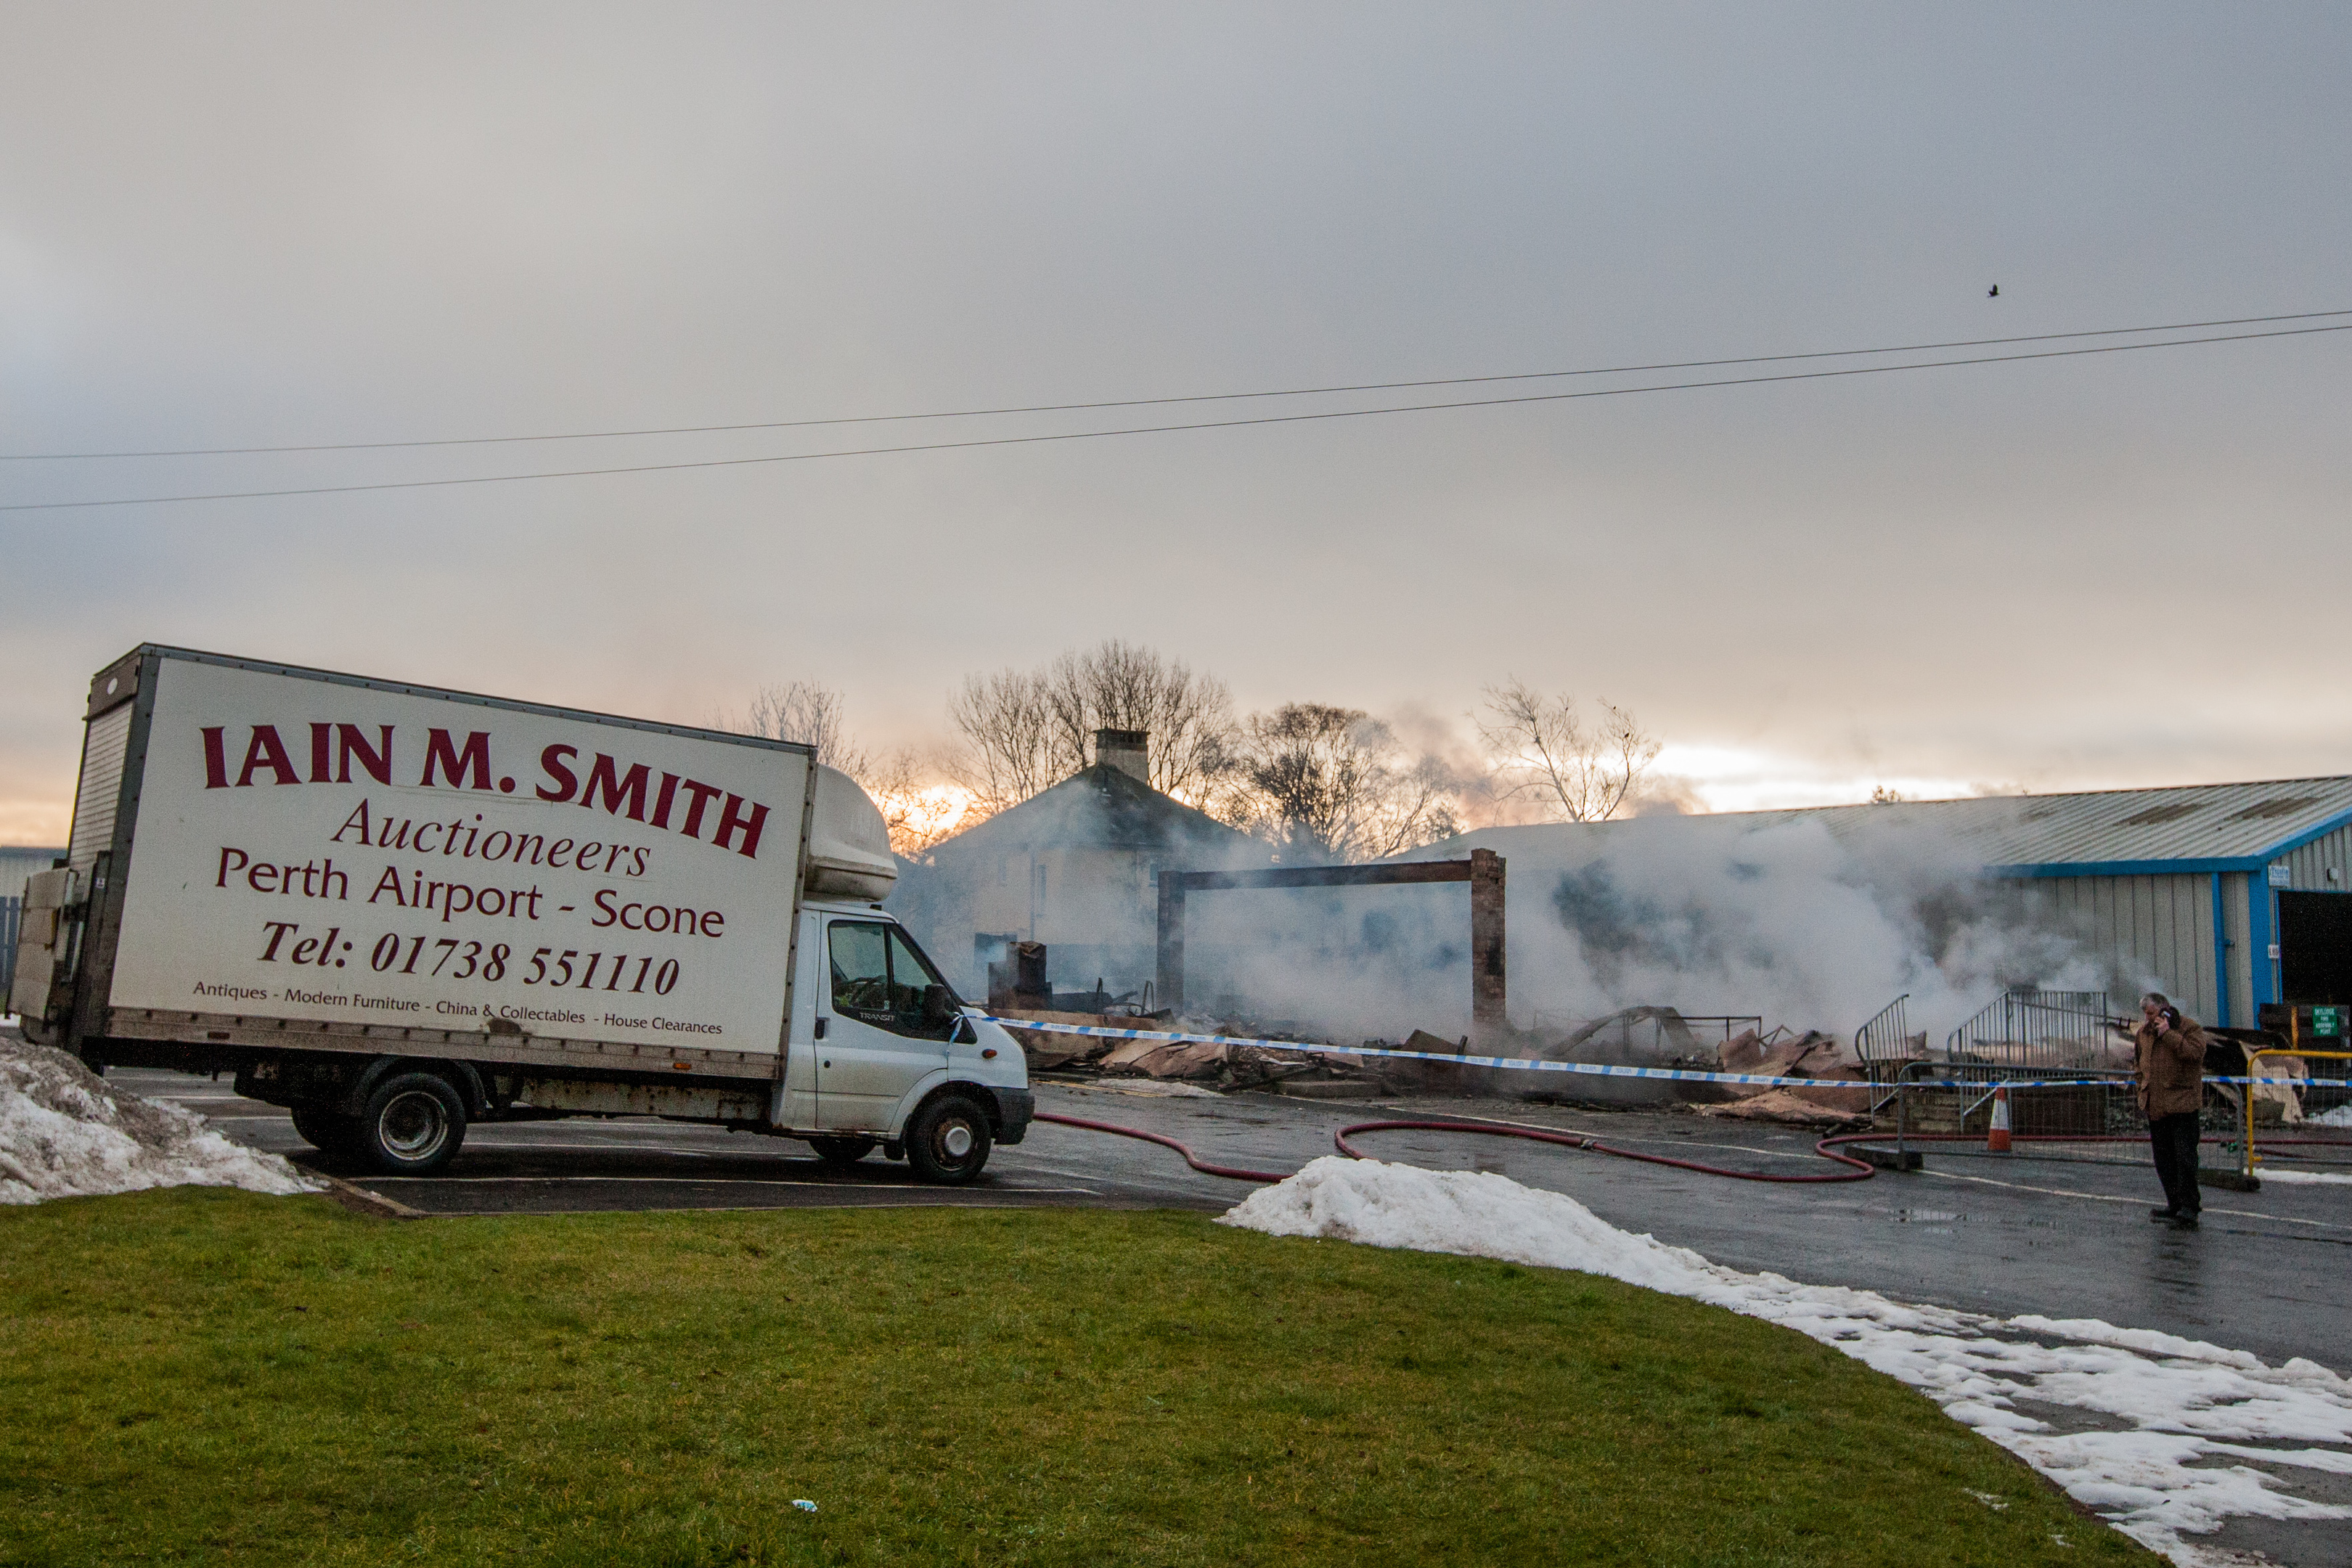 Tele News - Dundee - unknown reporter Story. Fire destroys building belonging to Iain M Smith Auctions at Perth Airport. Picture shows the ruin still smoking. Iain M Smith Auctions, Perth Airport, by Scone. Friday 9th March 2018.